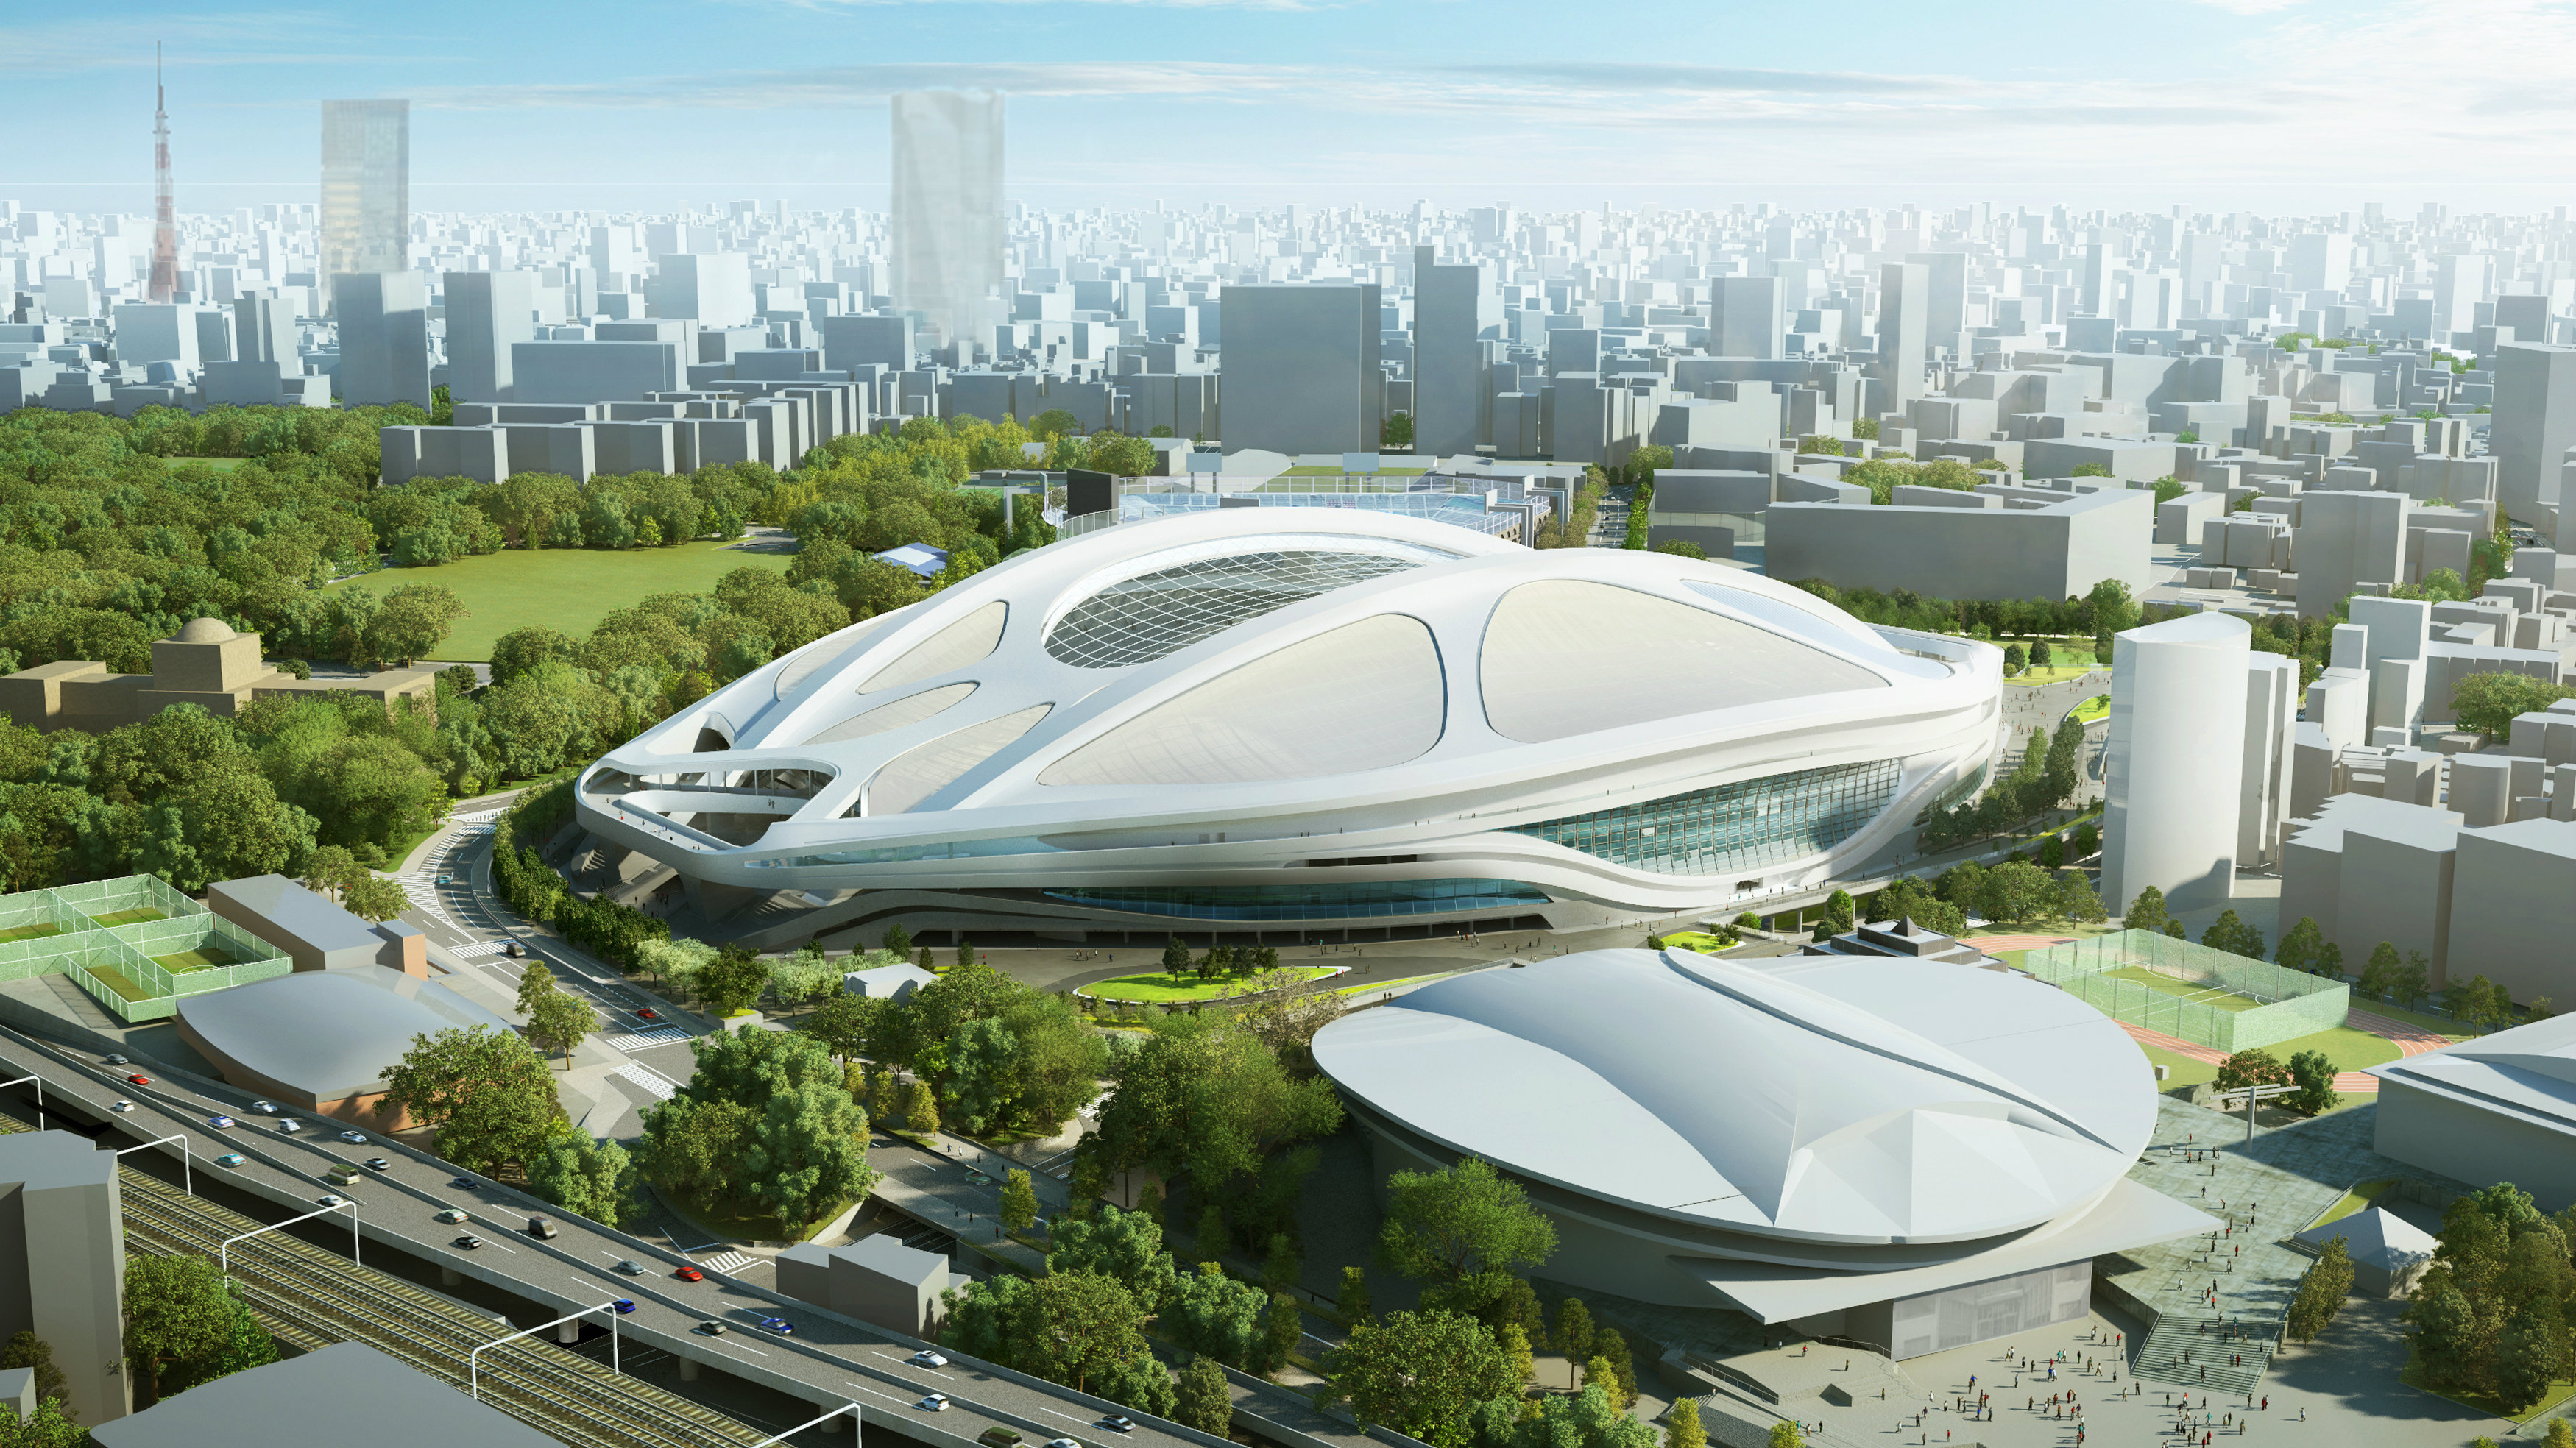 This artist's rendering released by Japan Sport Council in July 2015 shows the image of the Olympic stadium planned for the 2020 Tokyo Games, being used for the 2019 World Cup rugby match. The Olympic stadium plans will be redone because of spiraling costs, Japan Prime Minister Shinzo Abe said on Friday, July 17, 2015 in a major reversal. As a result, the stadium won't be completed in time for the 2019 Rugby World Cup, as scheduled, he added. (Japan Sport Council via AP)